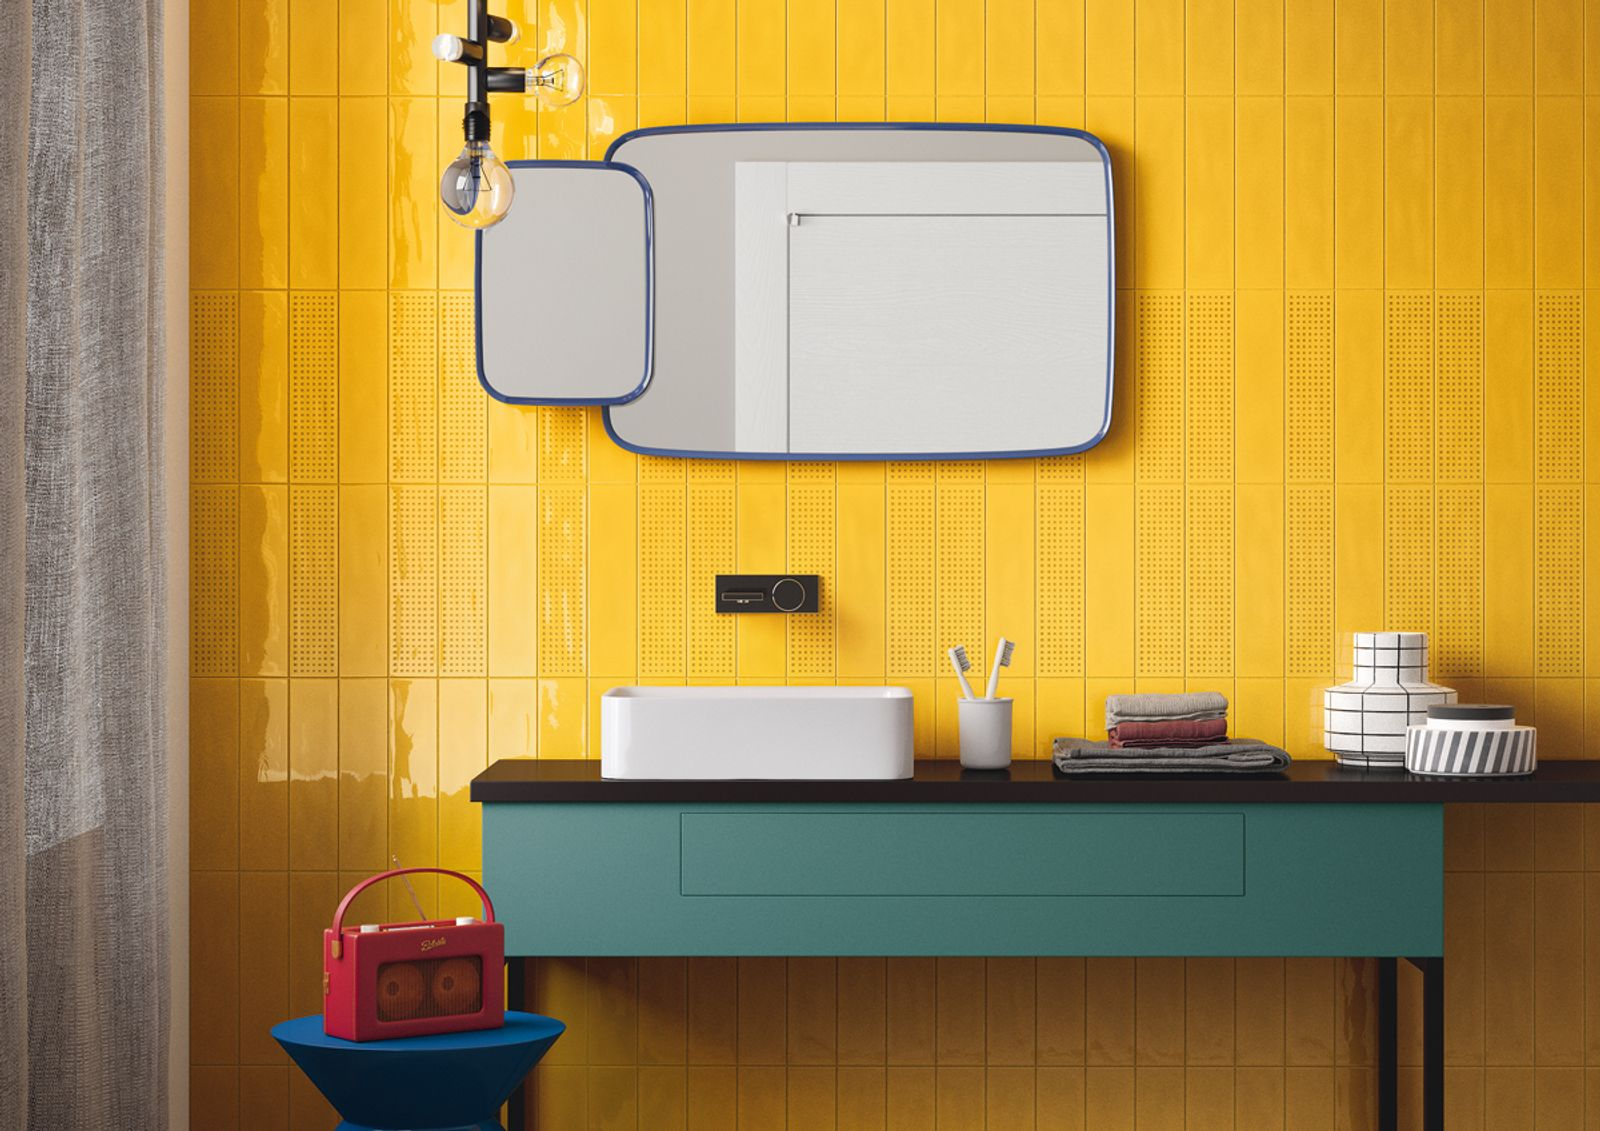 Slash is a double-fired tile generated by a careful study of enamels and a special 'color care' research system that divides modern colours into 'sparkling' and 'still'.There are four 'Sparkling' variants (yellow, apple green, turquoise and red) for a bright and lively style; four neutral and delicate 'Still' shades (greige, ecru, sugar paper and sage); plus a ninth colour, white, that brings the two spirits of the collection together perfectly. - AM SLASH 3 - Imola Ceramica